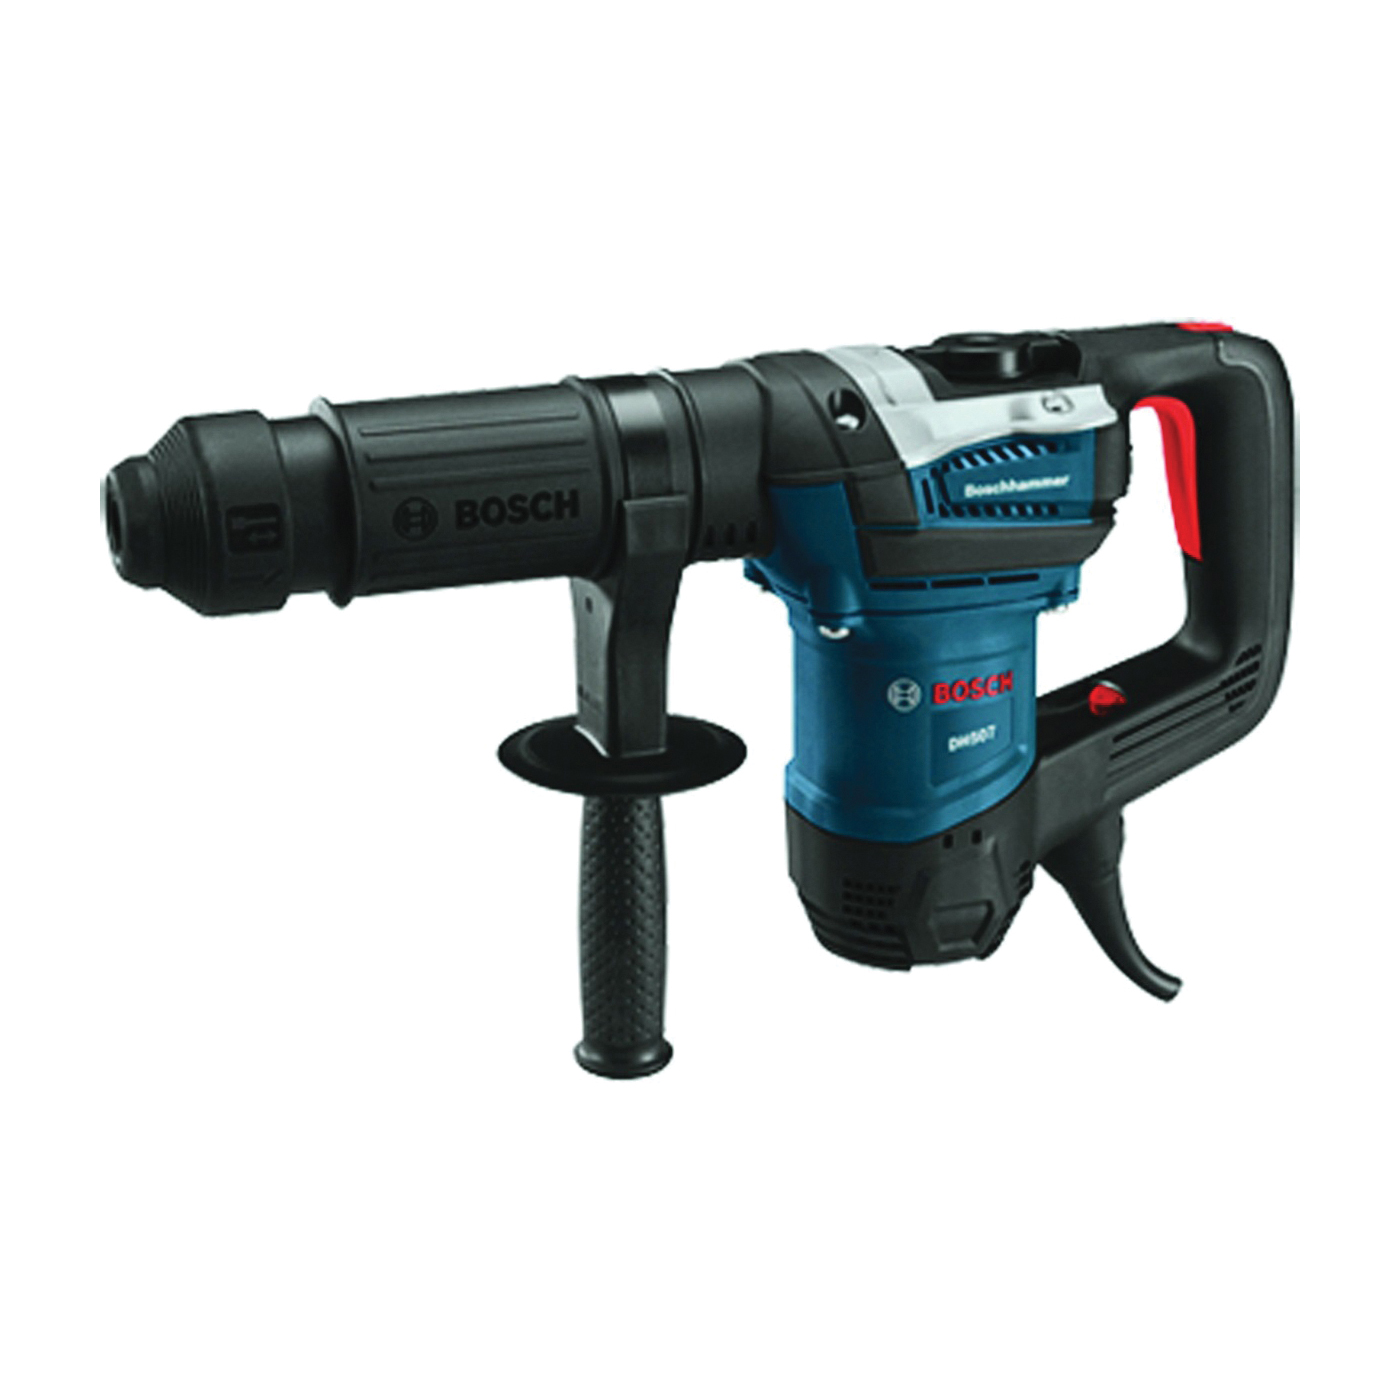 Picture of Bosch DH507 Demolition Hammer, 120 V, 10 A, 1 in Chuck, Keyless, SDS-Max Chuck, 1350 to 2800 bpm BPM